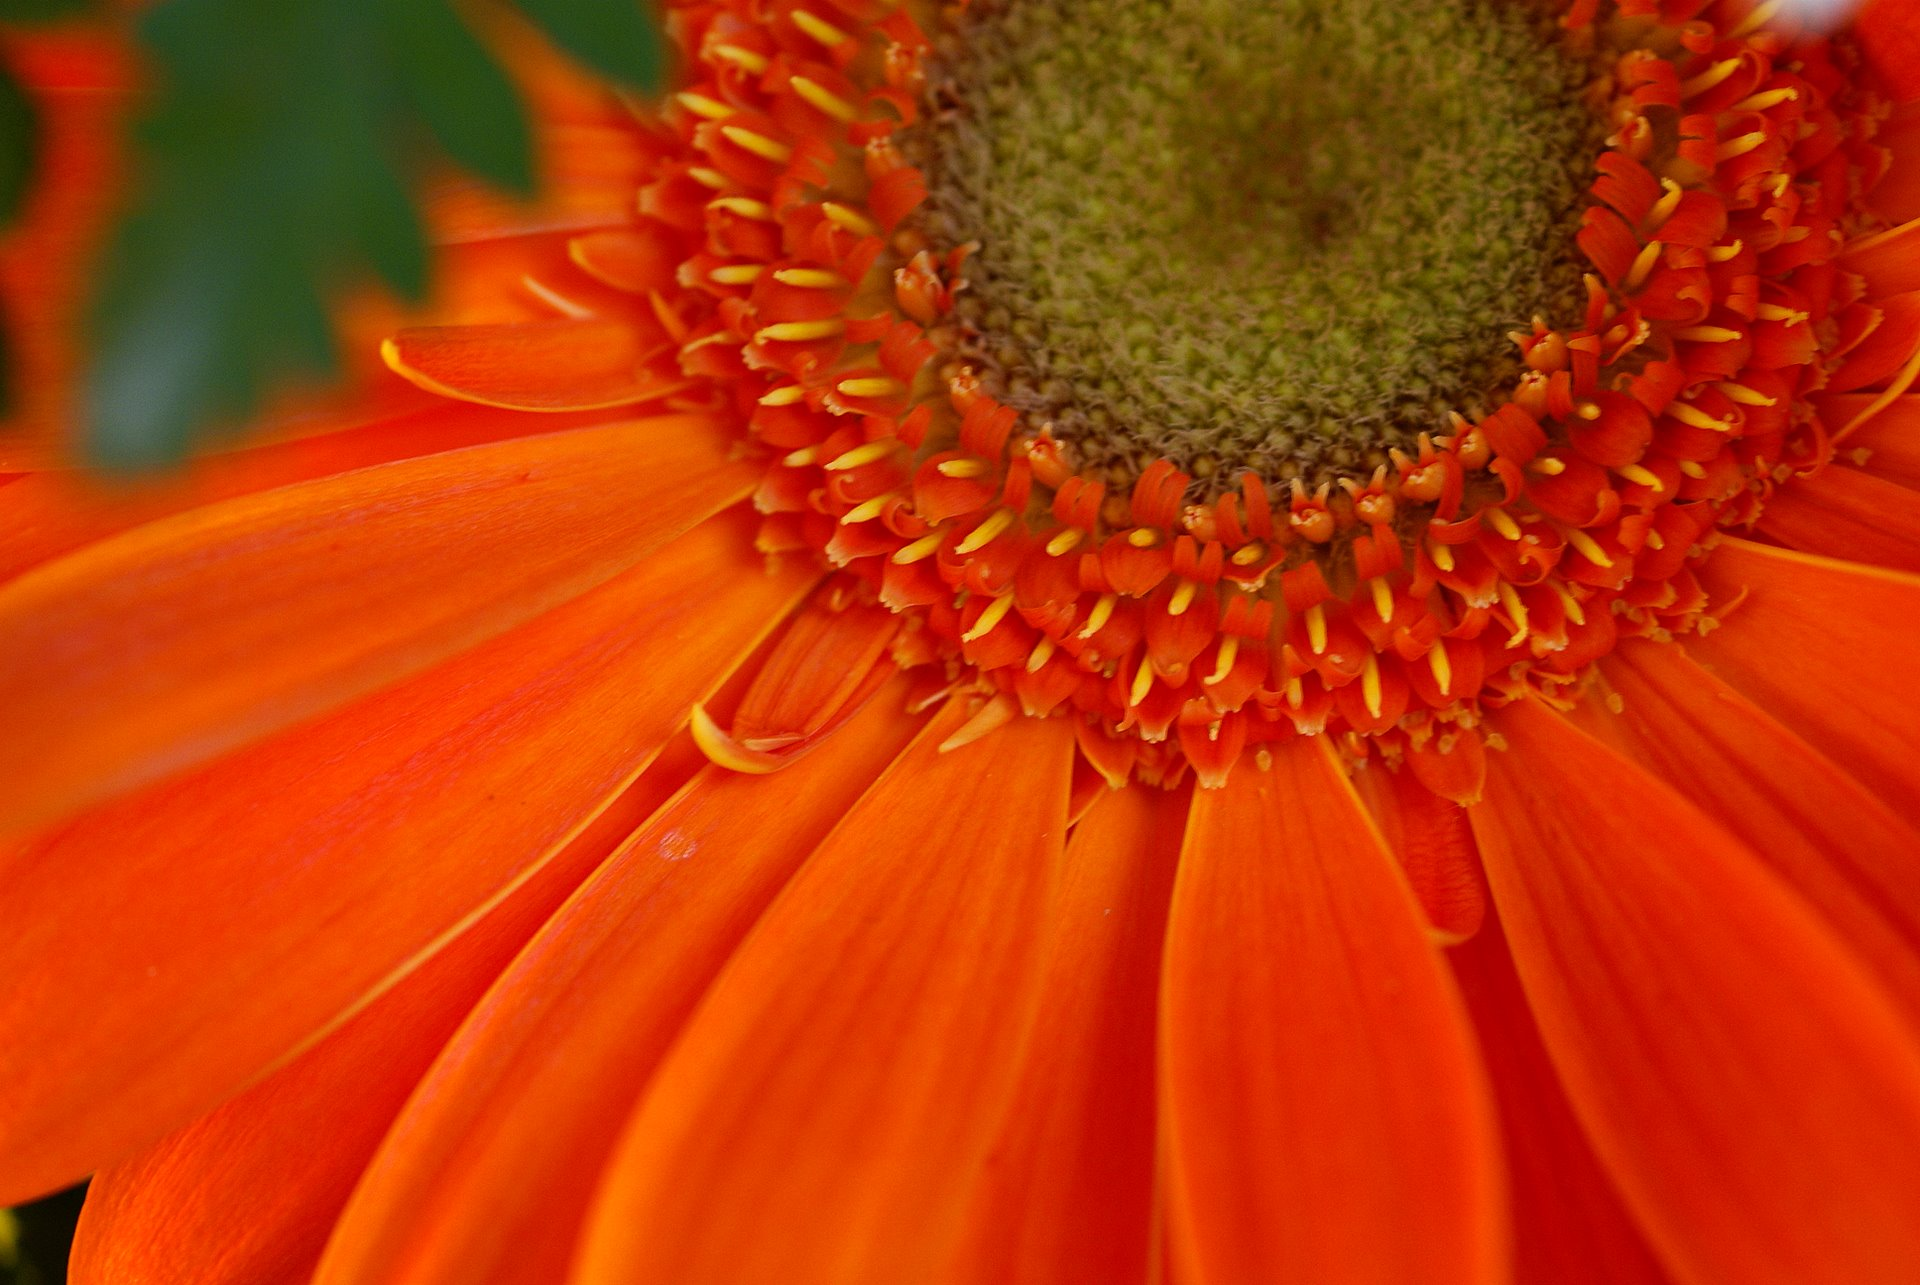 http://www.fabiovisentin.com/photography/photo/20/orange-gerber-daisy-flower-macro-photo.jpg